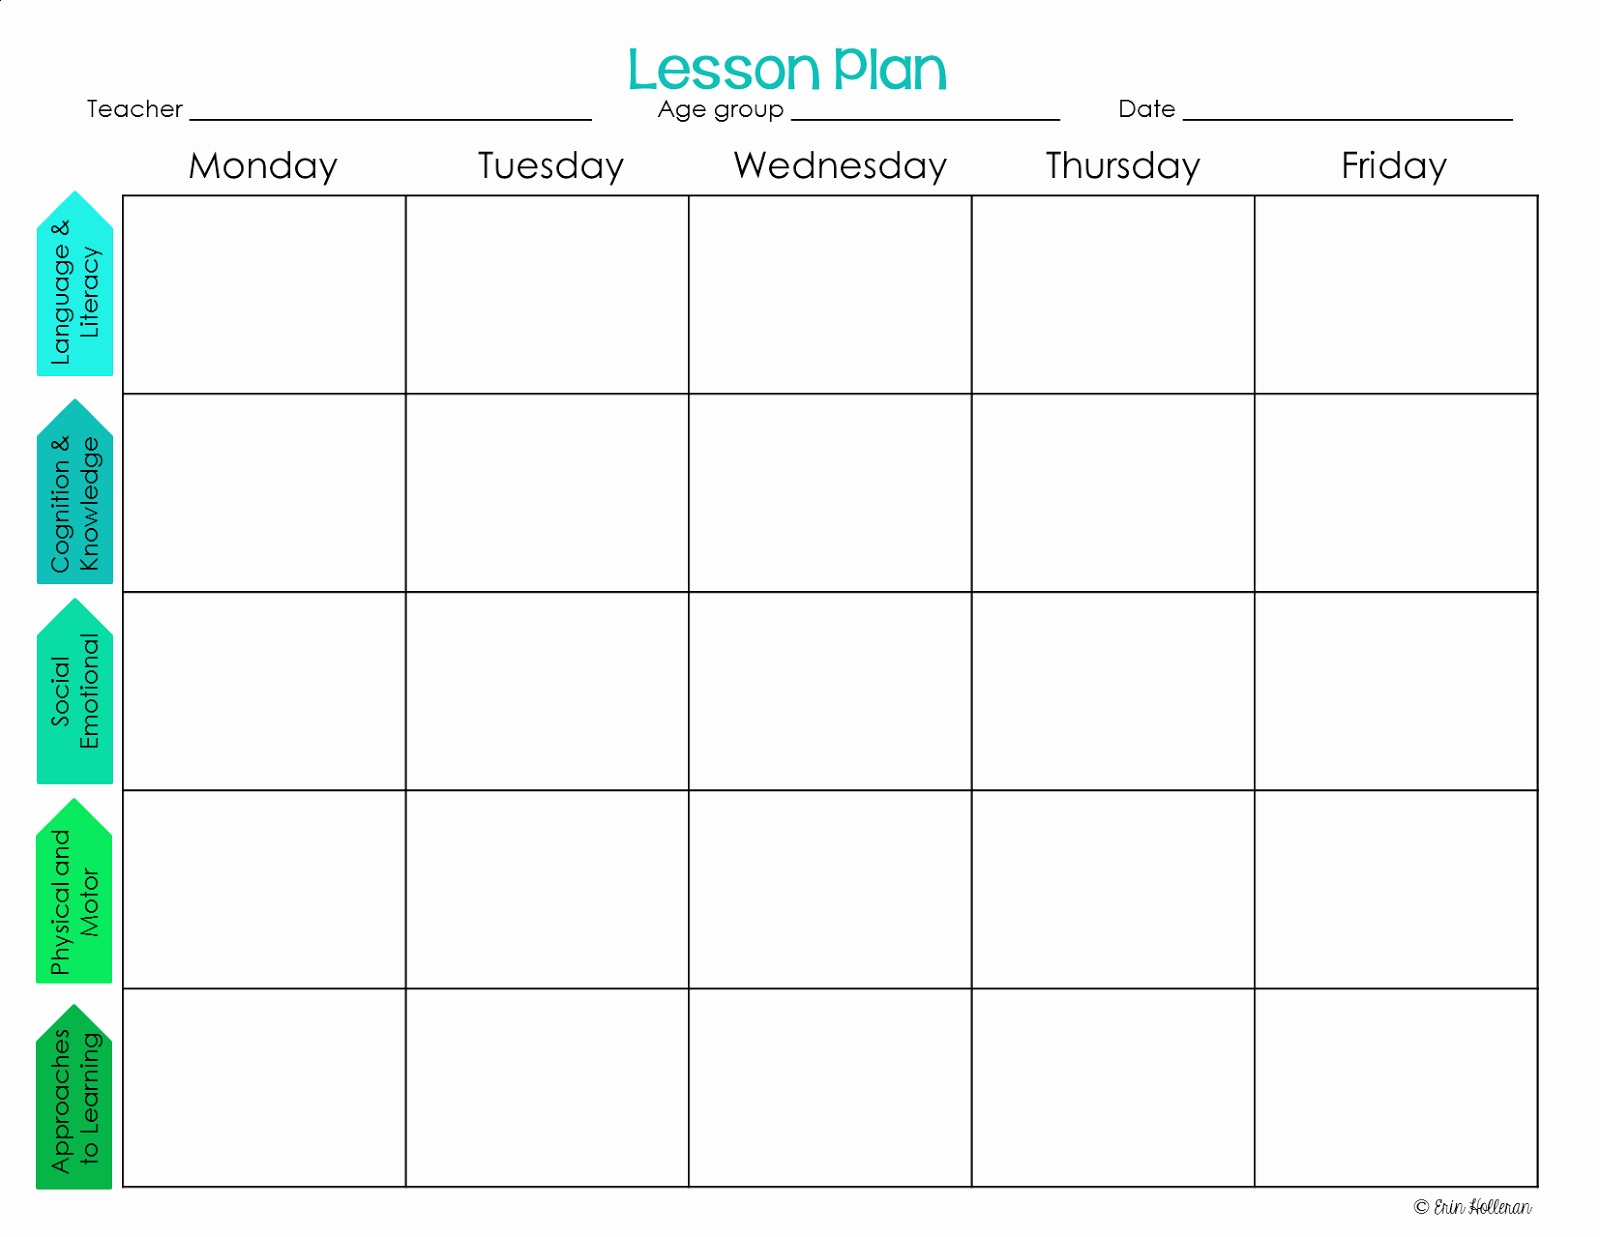 022 Editable Weekly Lesson Plan Template Infant Templates-Weekly Lesson Plan Blank Template